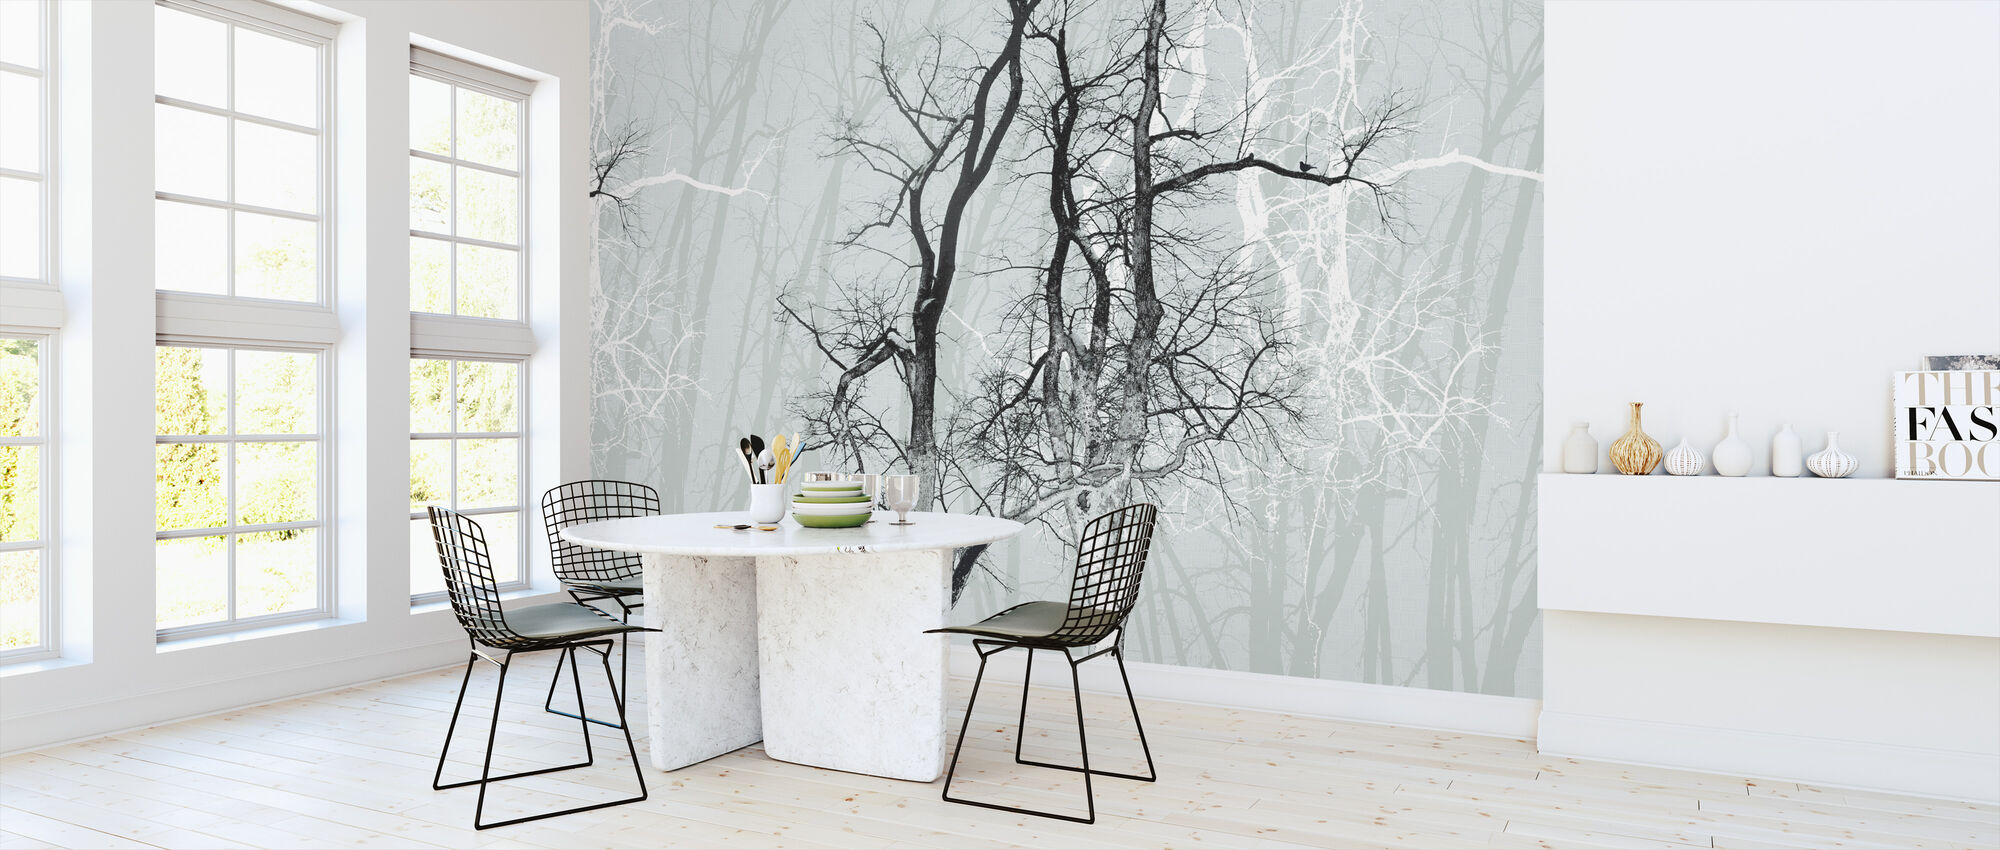 Wander Wood Frost - Wallpaper - Kitchen